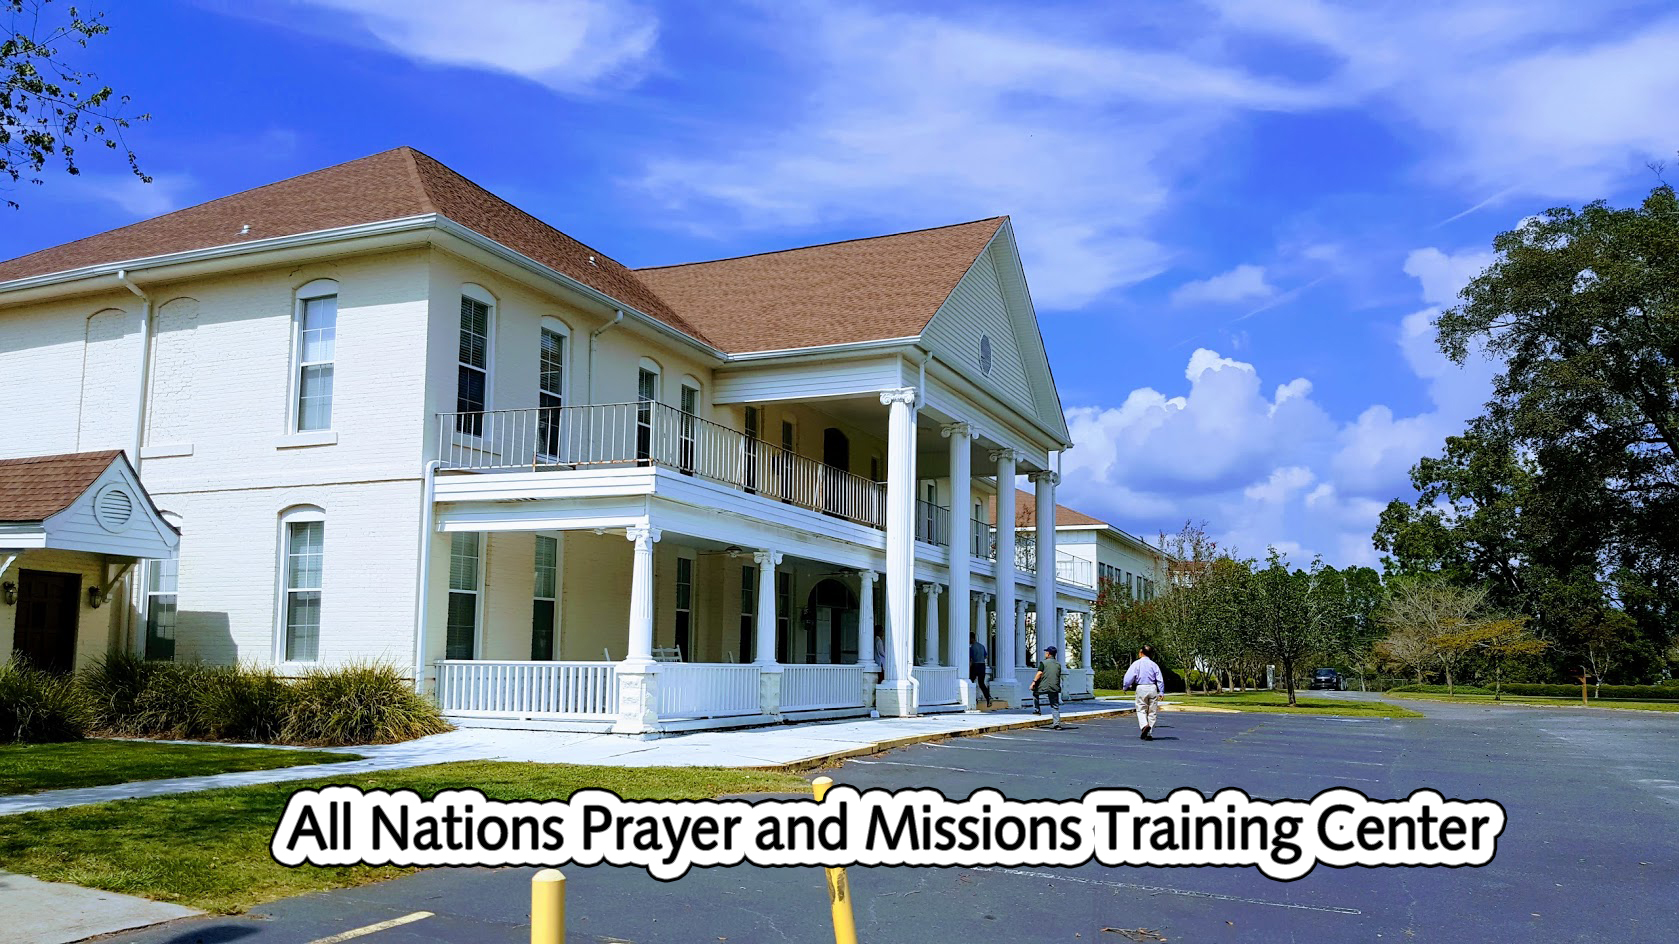 All Nations Prayer and Missions Training Center_new.jpg